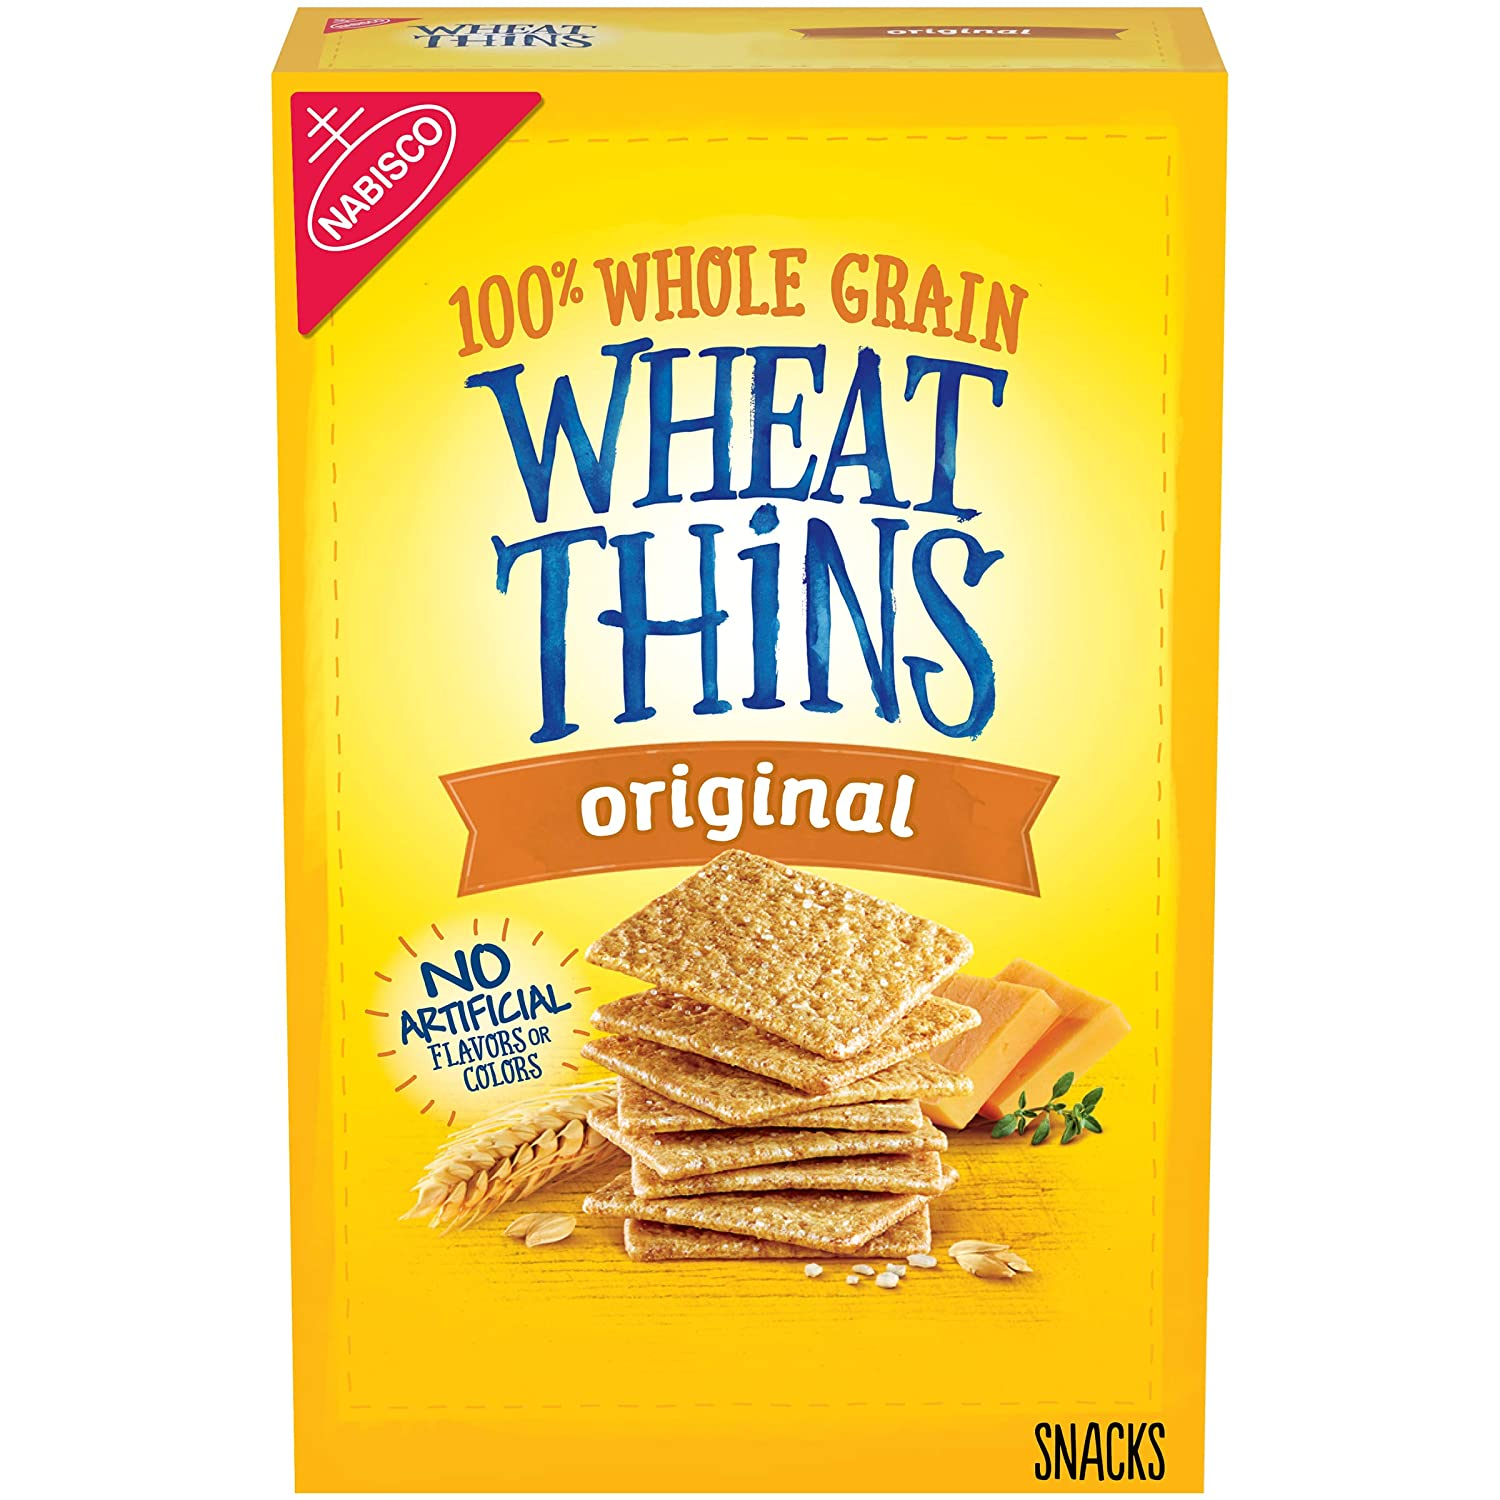 Wheat Thins Original Whole Grain Wheat Crackers, Holiday Christmas Crackers, 9.1 oz